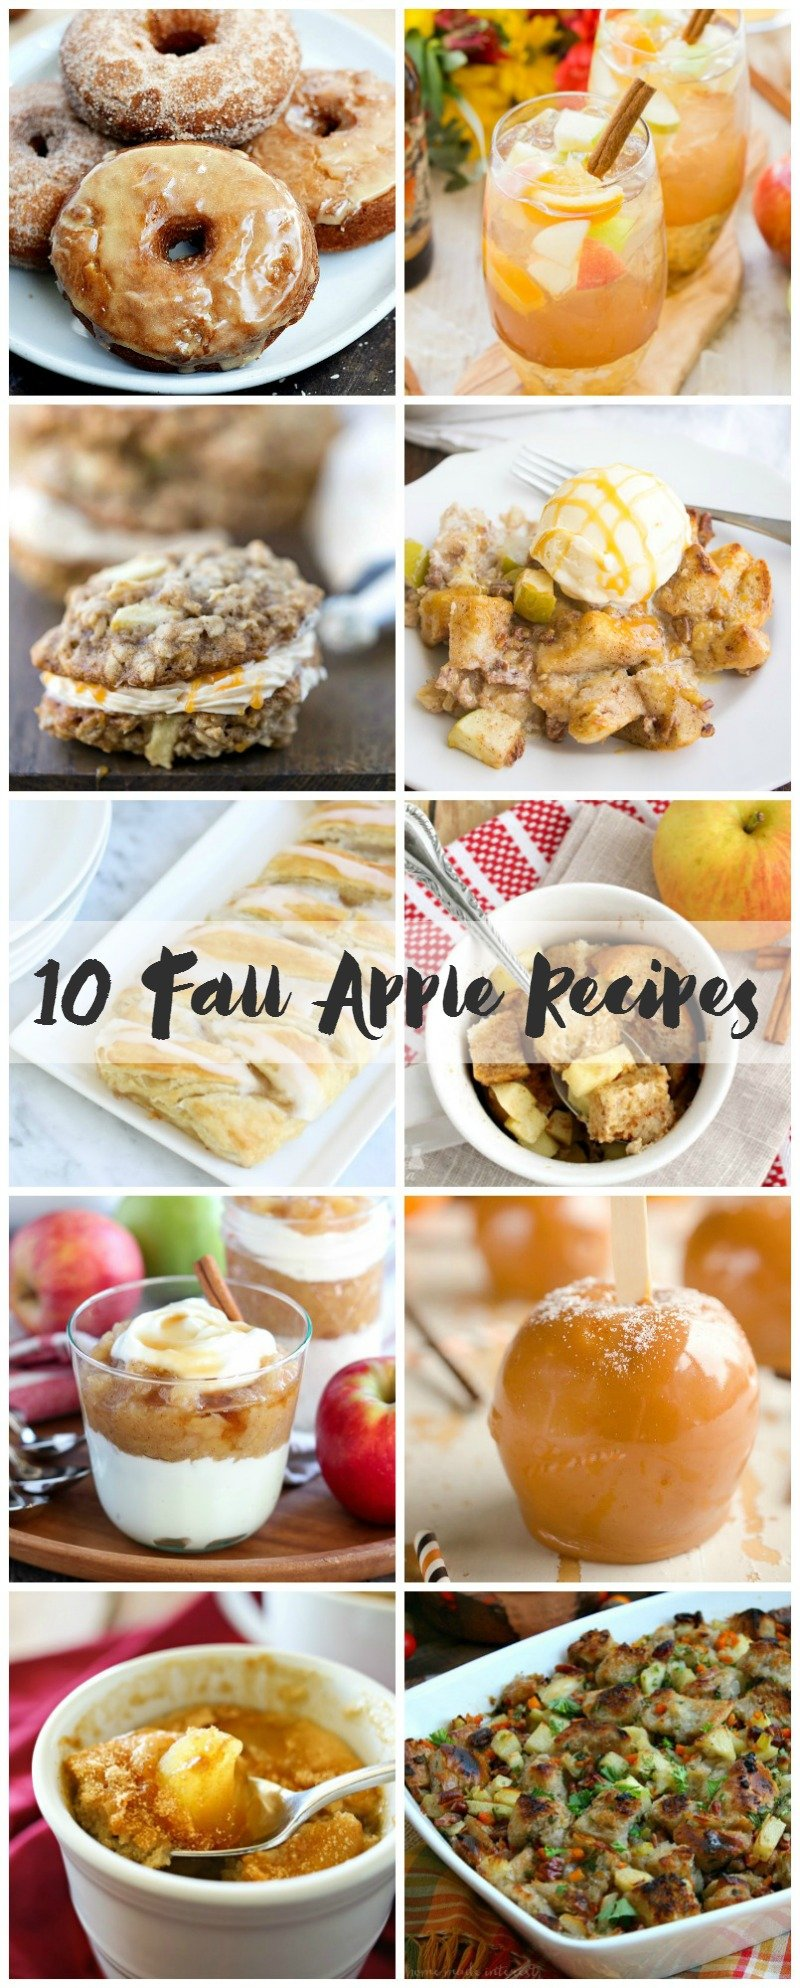 10 fall apple recipes to satisfy your fall apple cravings.